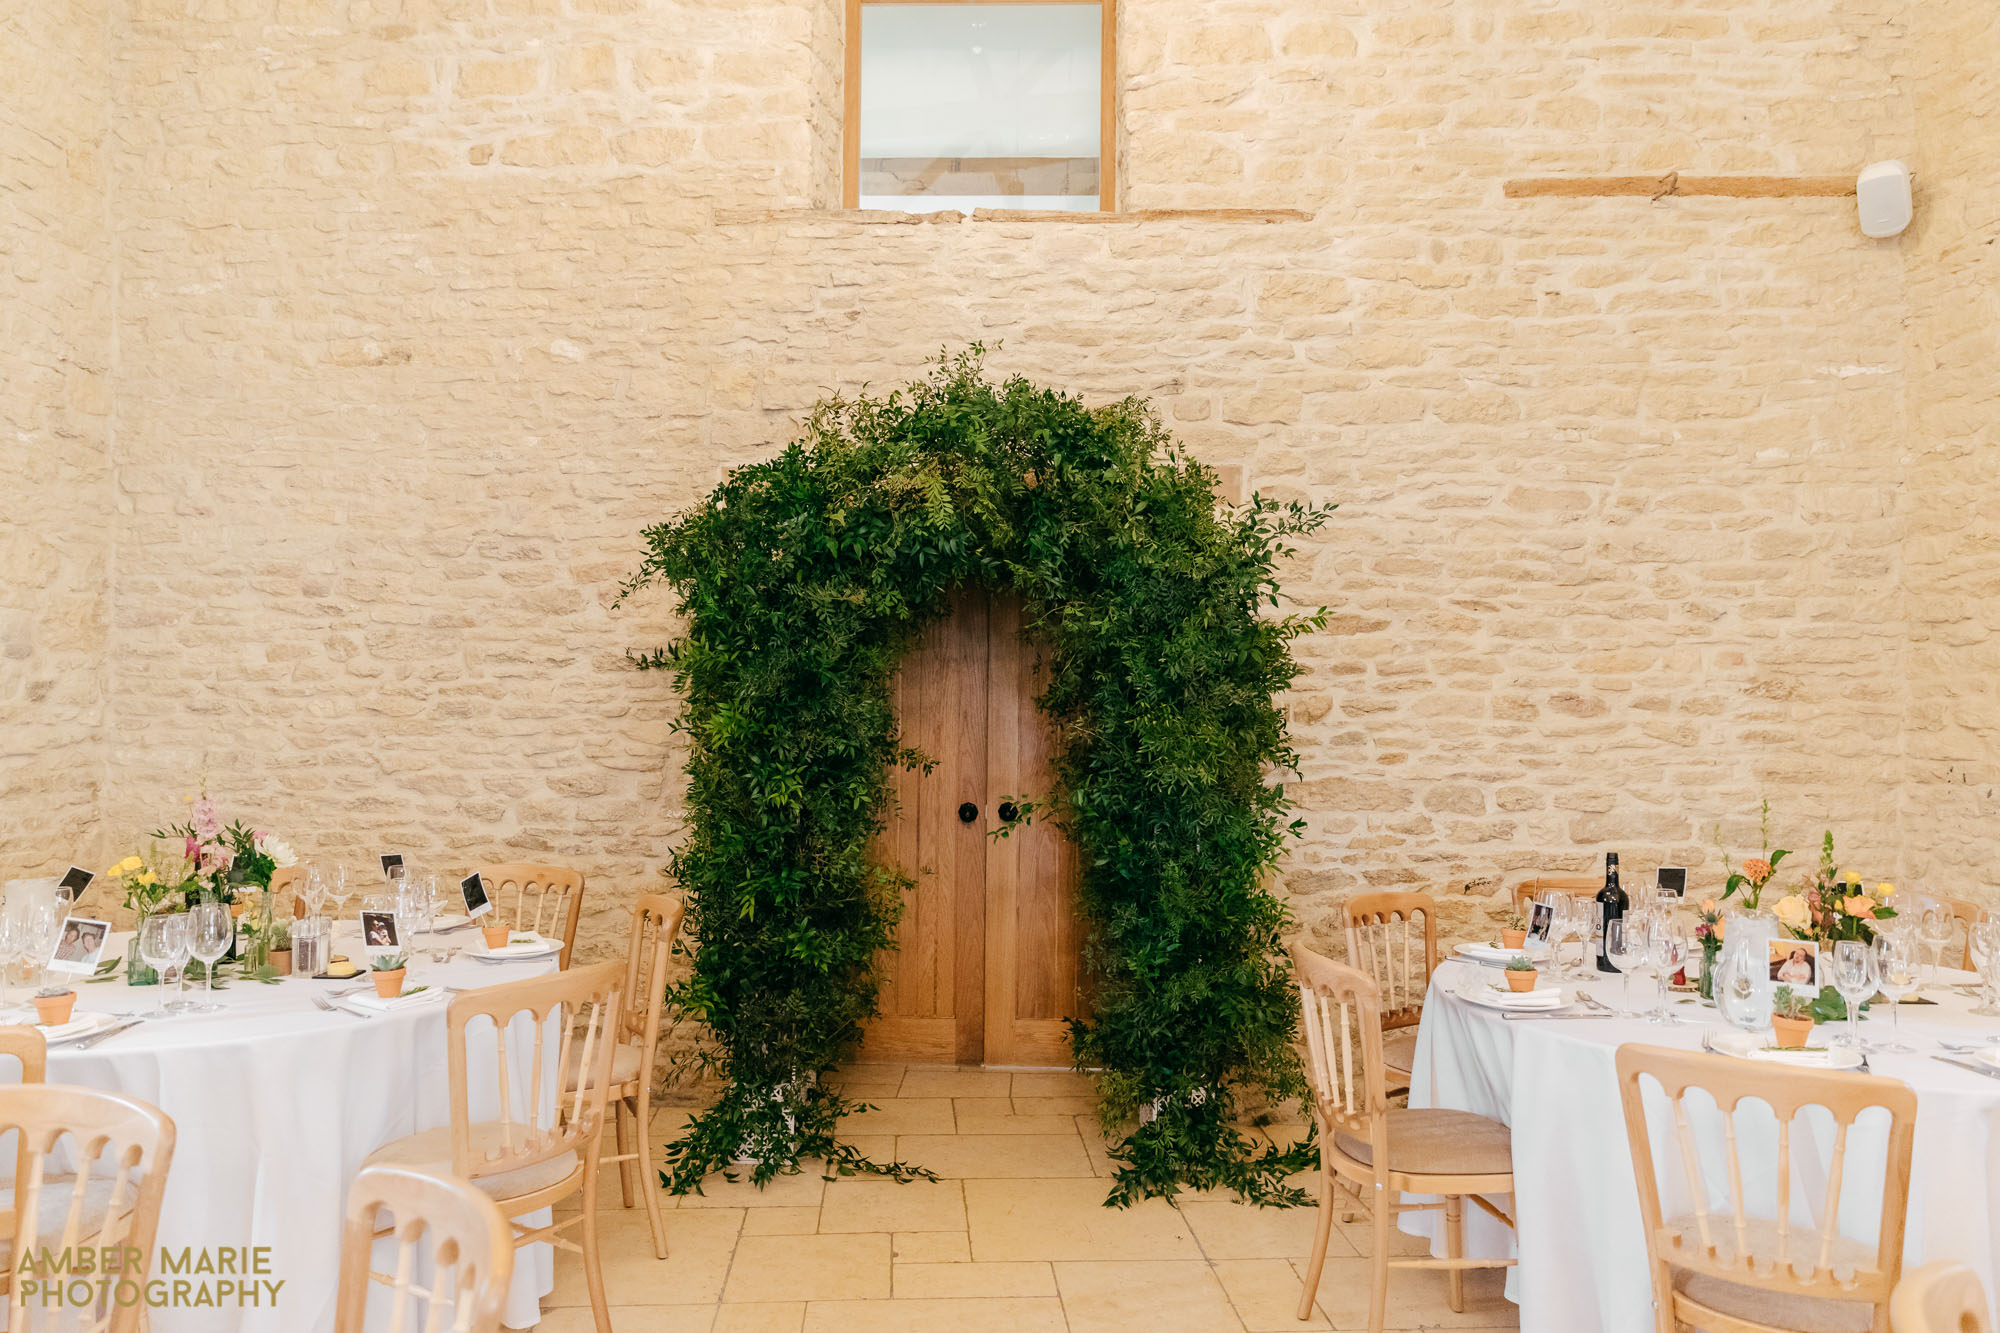 floral foliage arch at kingscote barn wedding